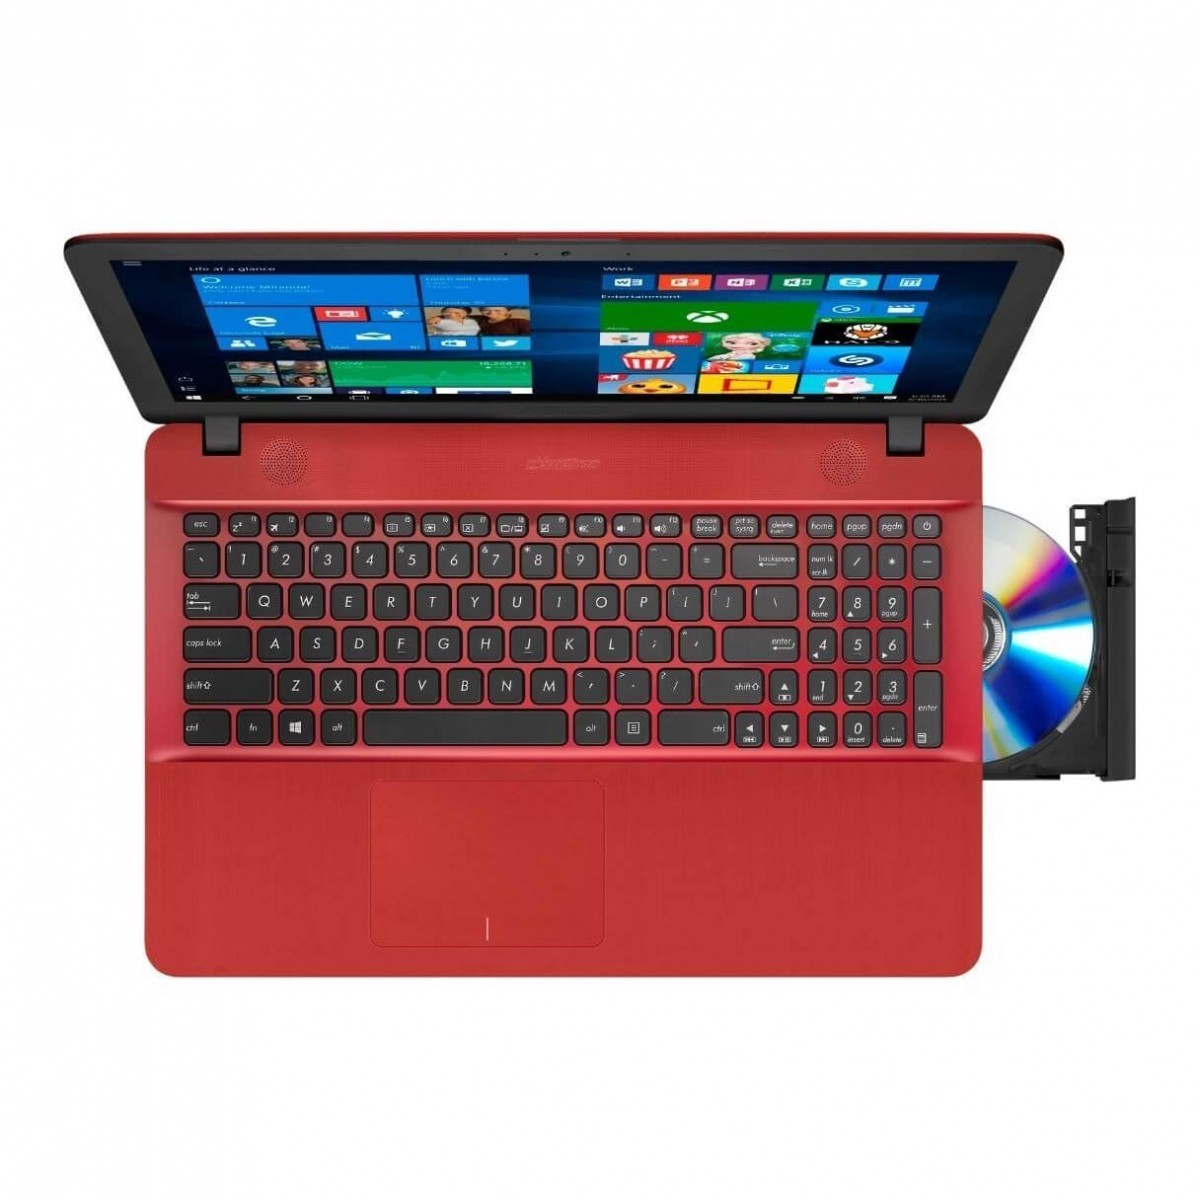 Asus Vivobook Max X541NA-GQ080T - Red